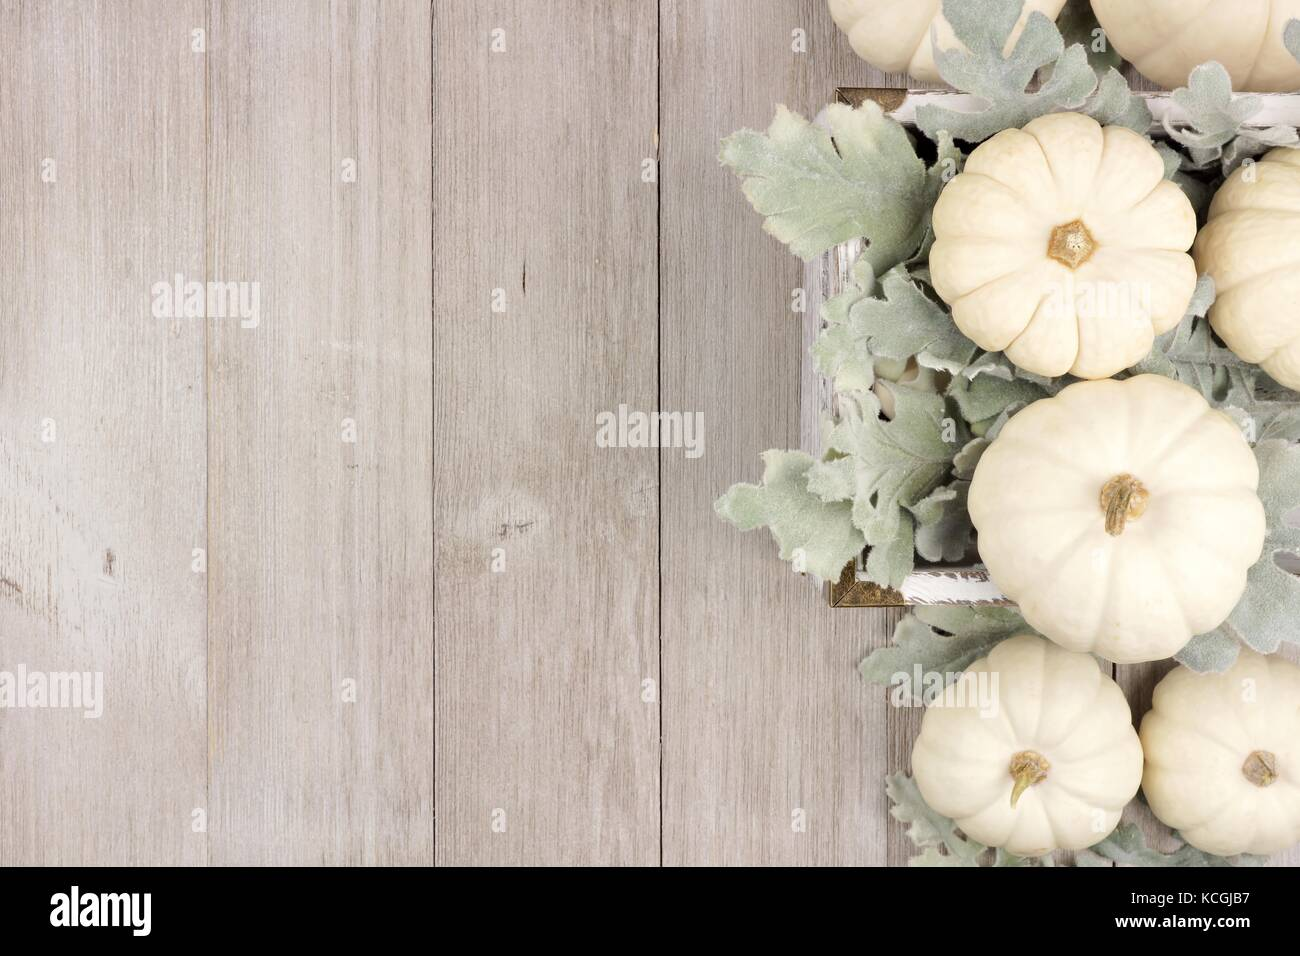 Autumn Side Border Of White Pumpkins And Silver Leaves Over A Rustic Light Gray Wood Background